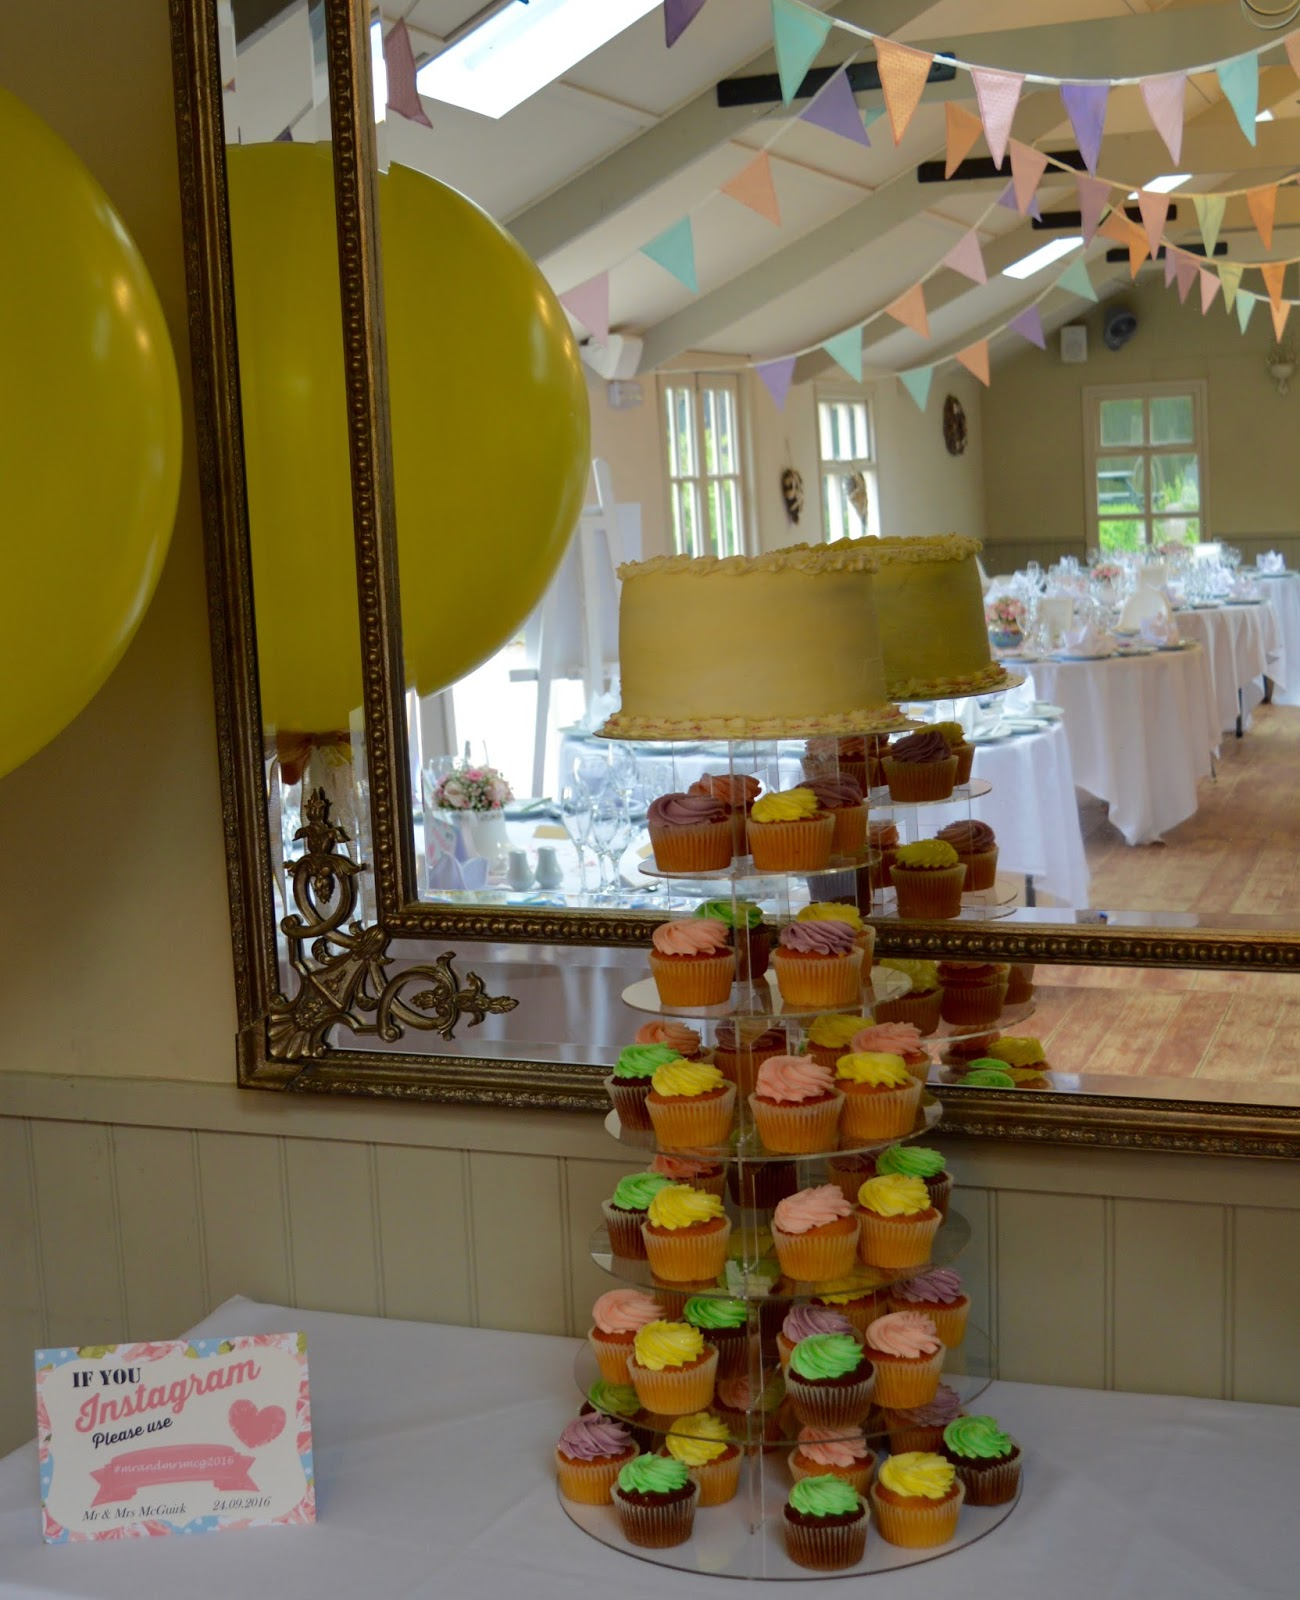 Weddings at The Parlour at Blagdon in Northumberland - wedding cake by Pet Lamb Girls